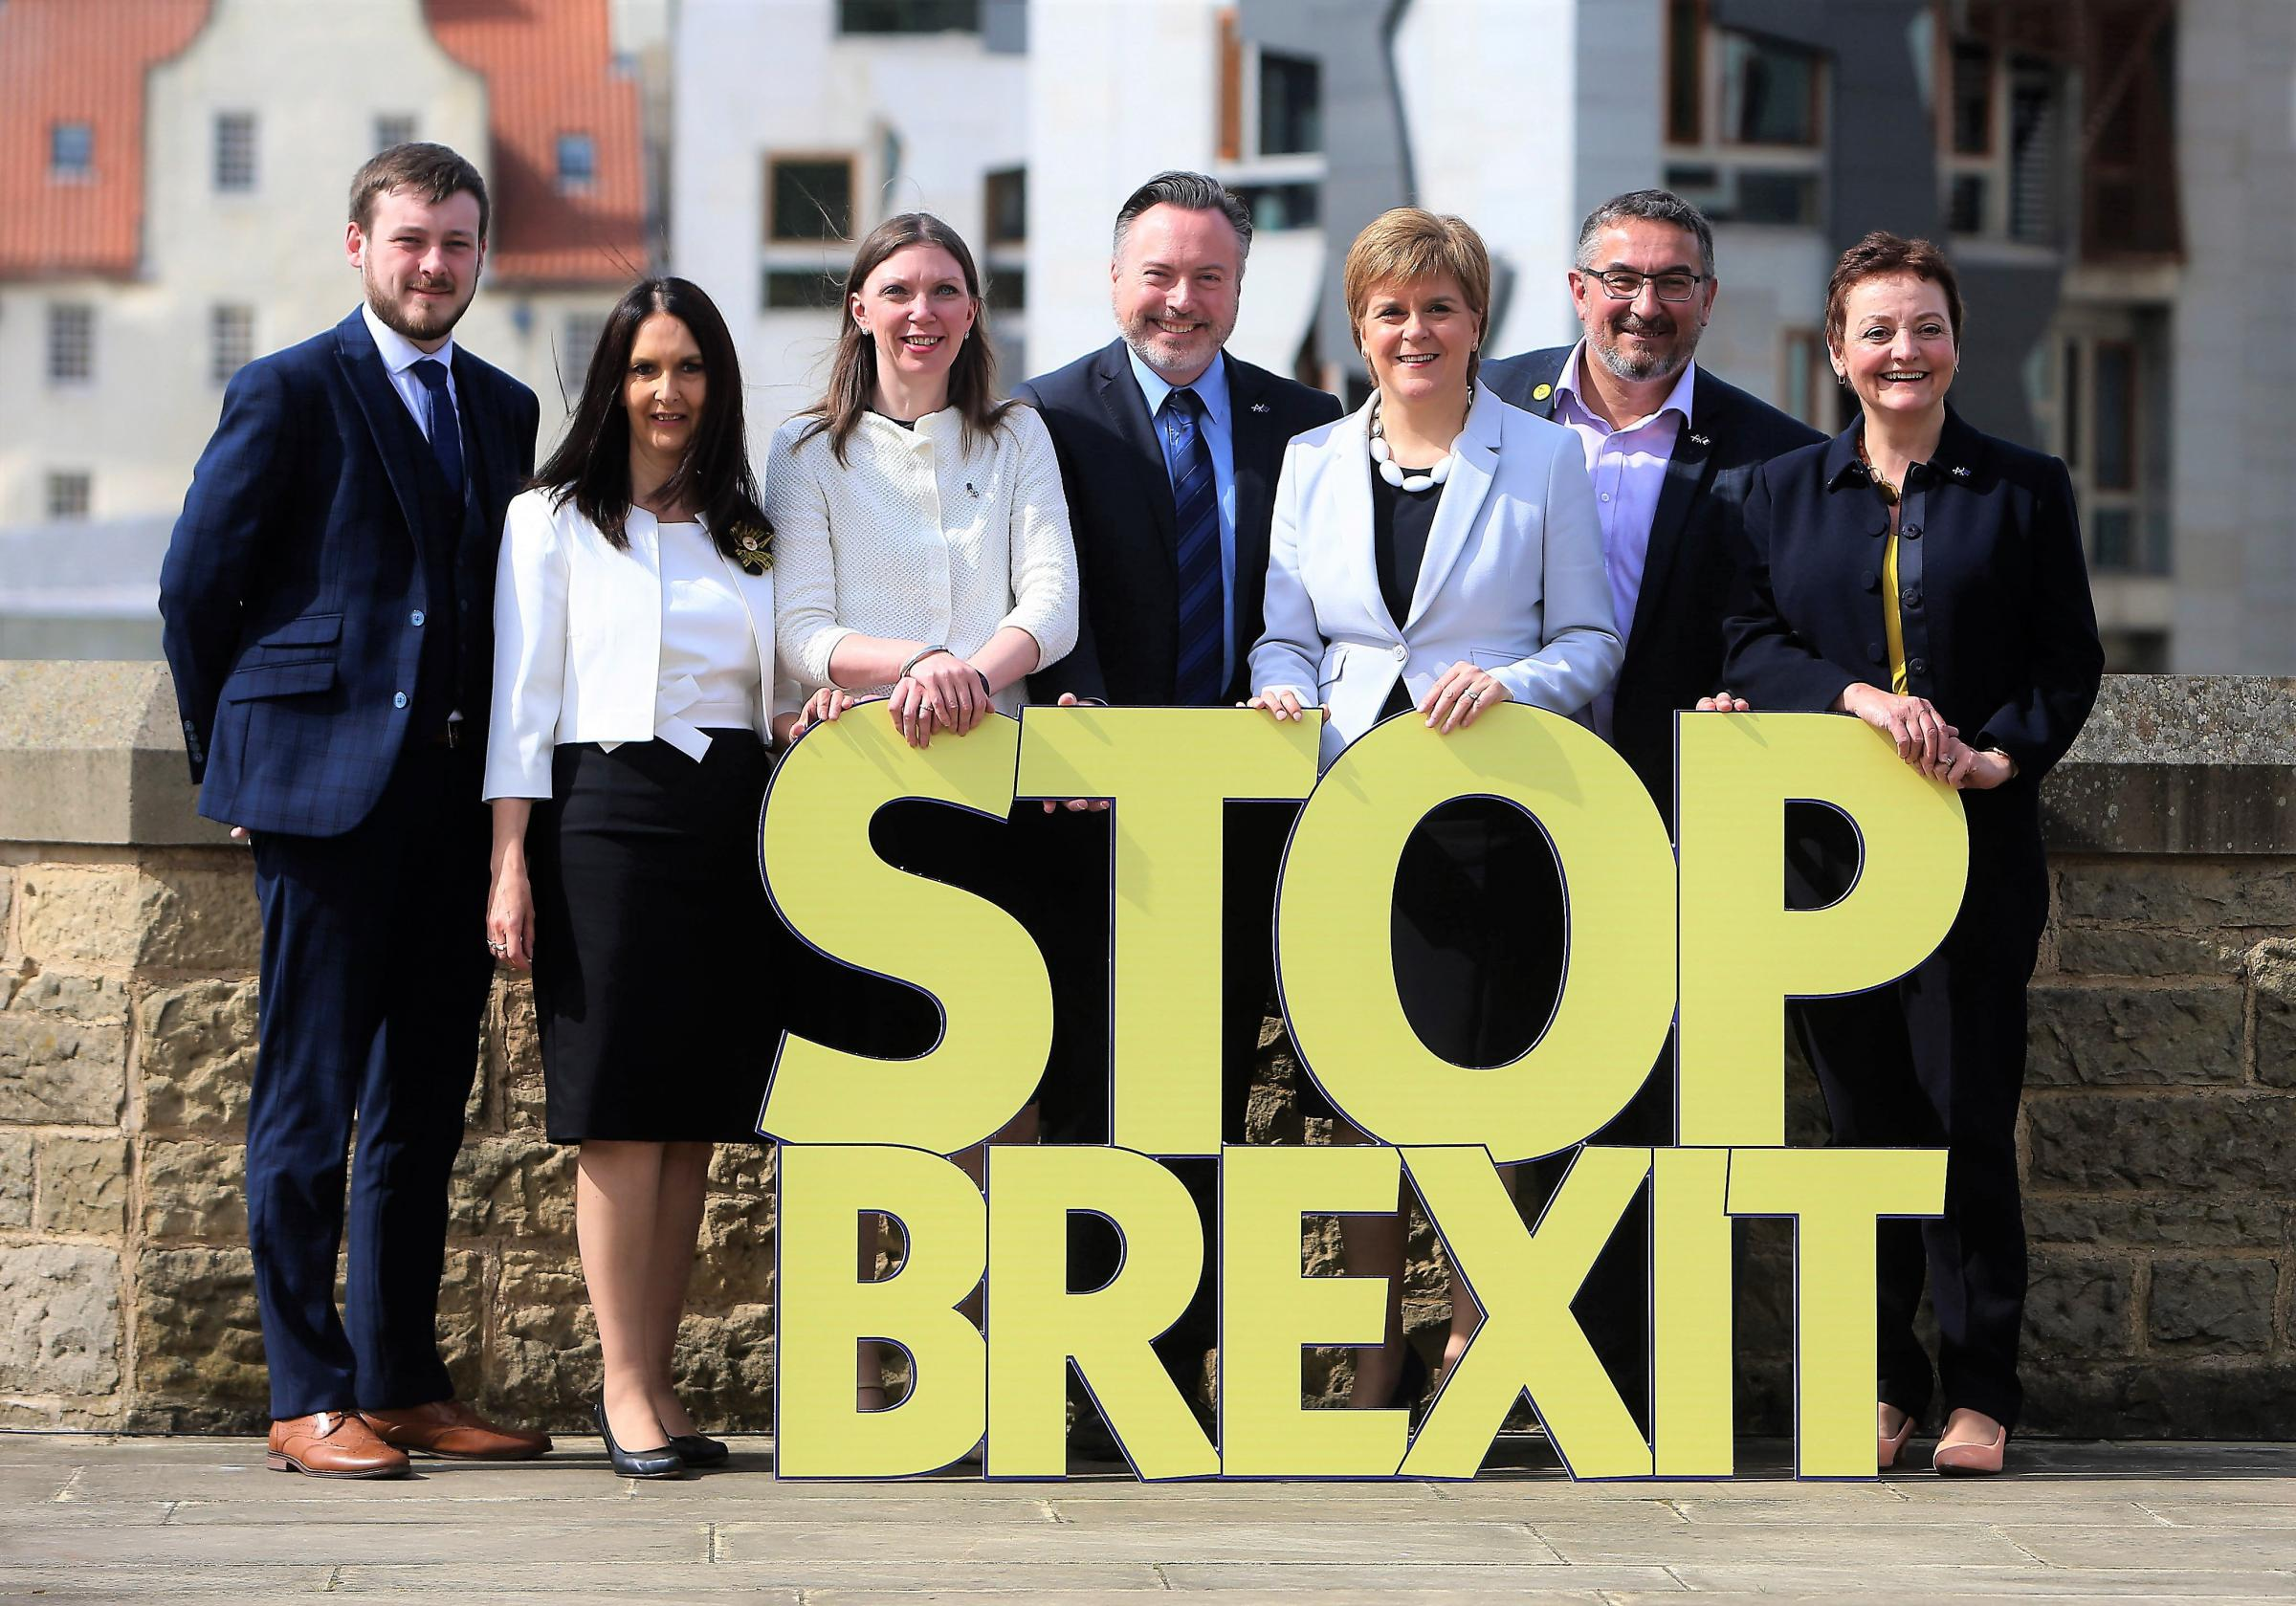 SNP leader Nicola Sturgeon with, from left, European Parliament candidates Alex Kerr, Margaret Ferrier, Aileen McLeod, Alyn Smith, Christian allard and Heather Anderson. Photograph; Gordon Terris